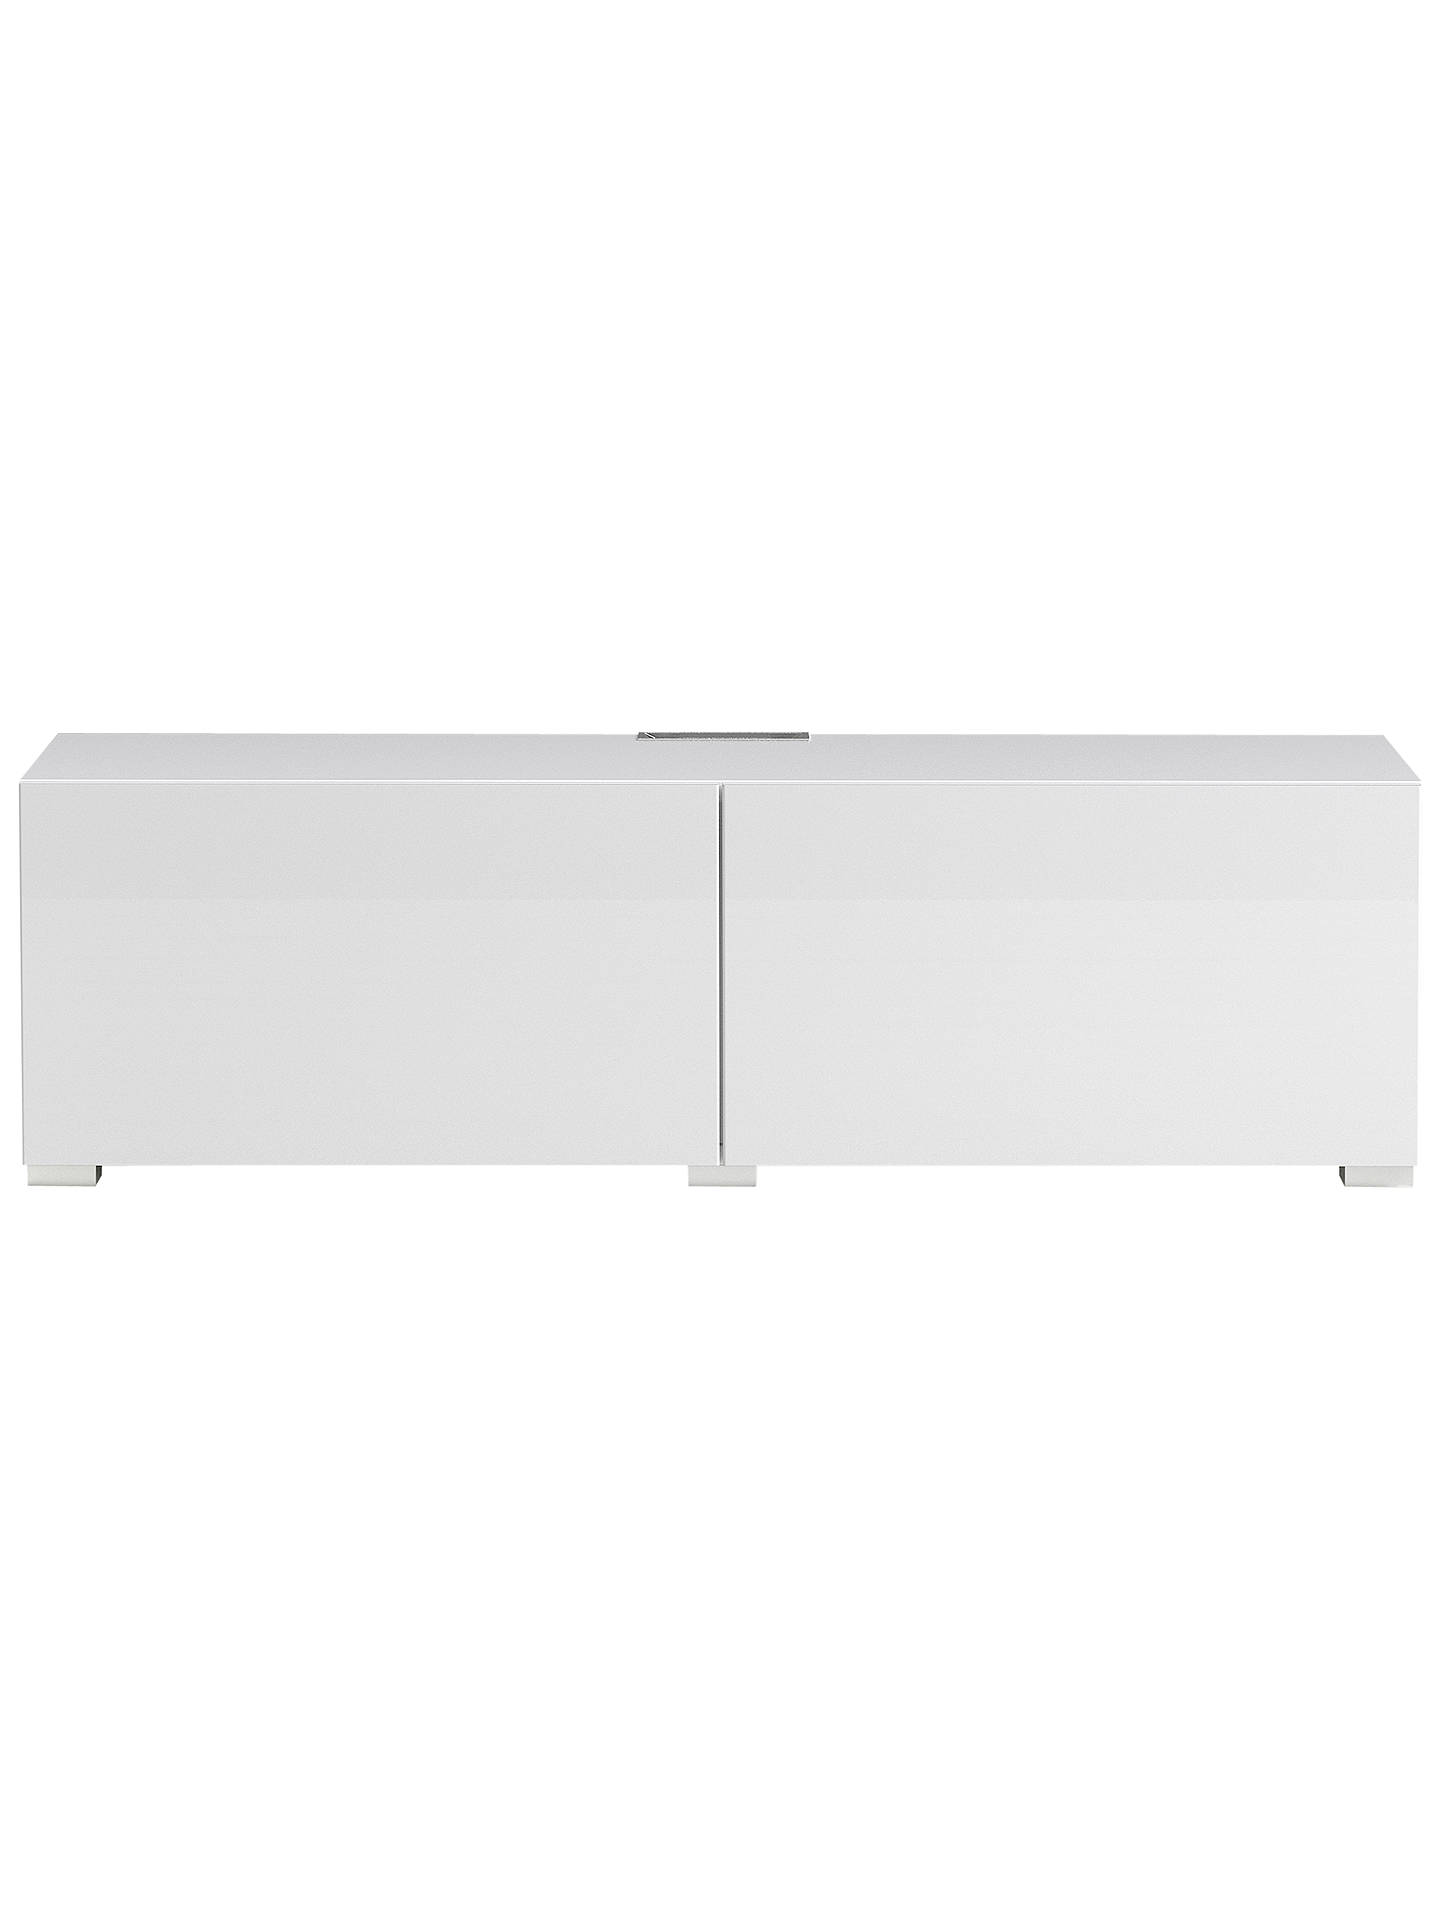 BuyHouse by John Lewis Mix it Media Unit - White frame / White doors Online at johnlewis.com